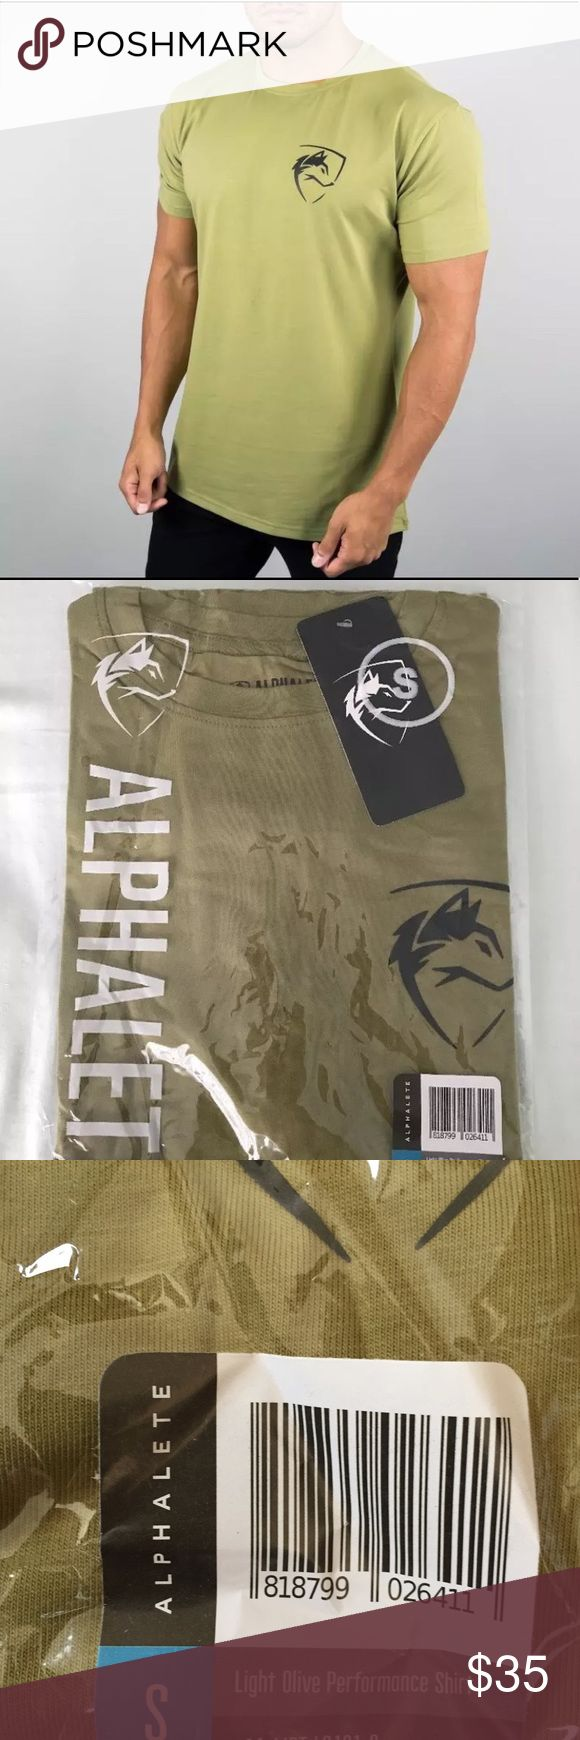 Alphalete T-shirt New, size small, color: olive Price is firm! Tags: Alphalete, Gymshark Alphalete Shirts Tees - Short Sleeve